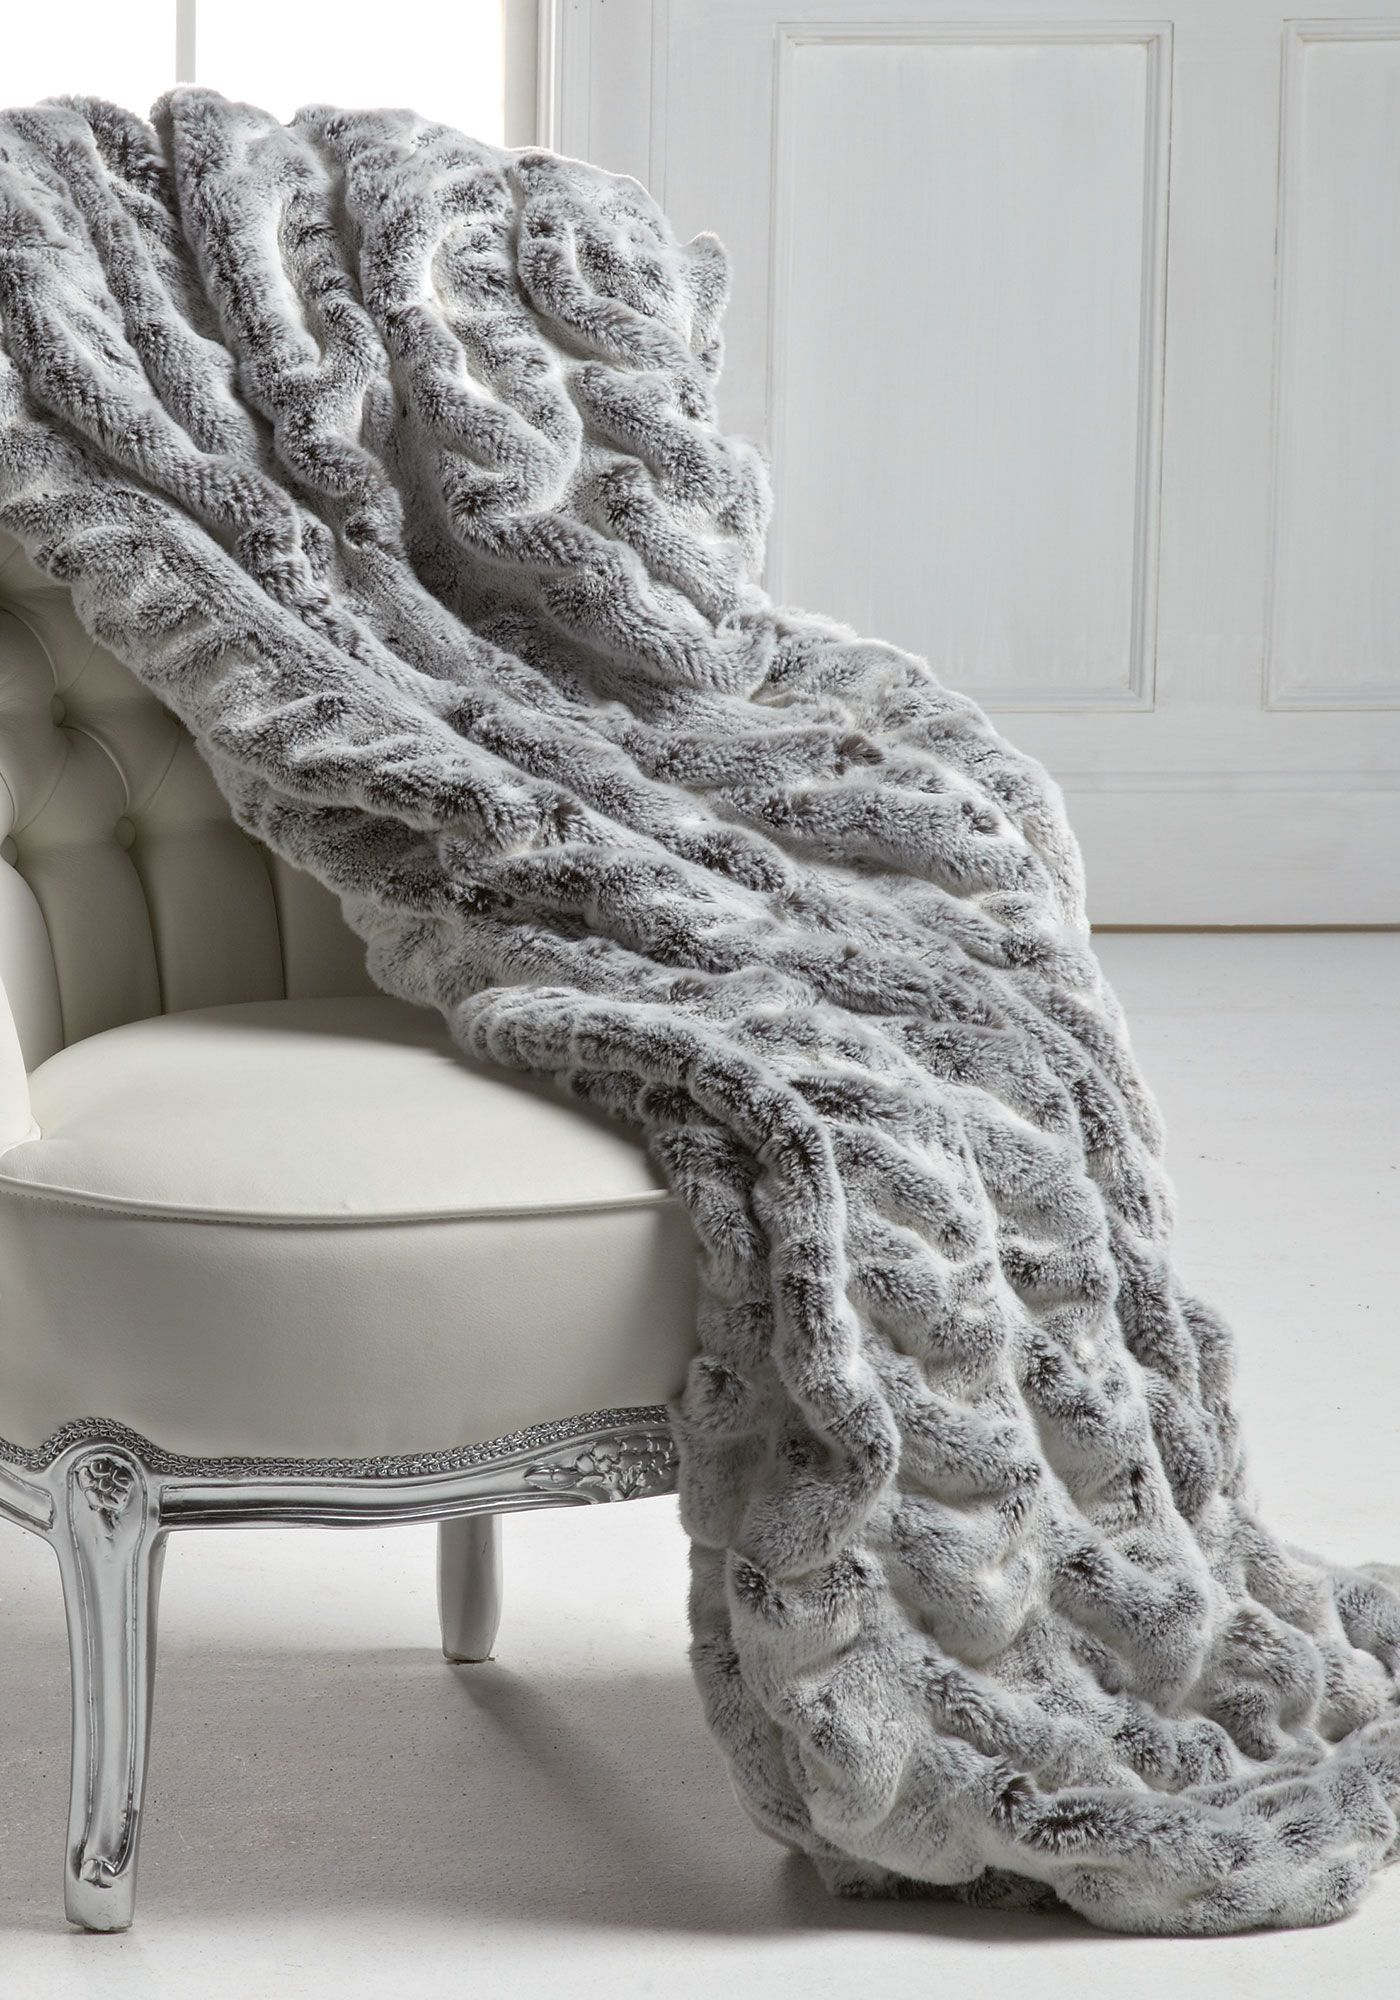 Frosted Grey Mink Couture Faux Fur Throw Blankets #faux